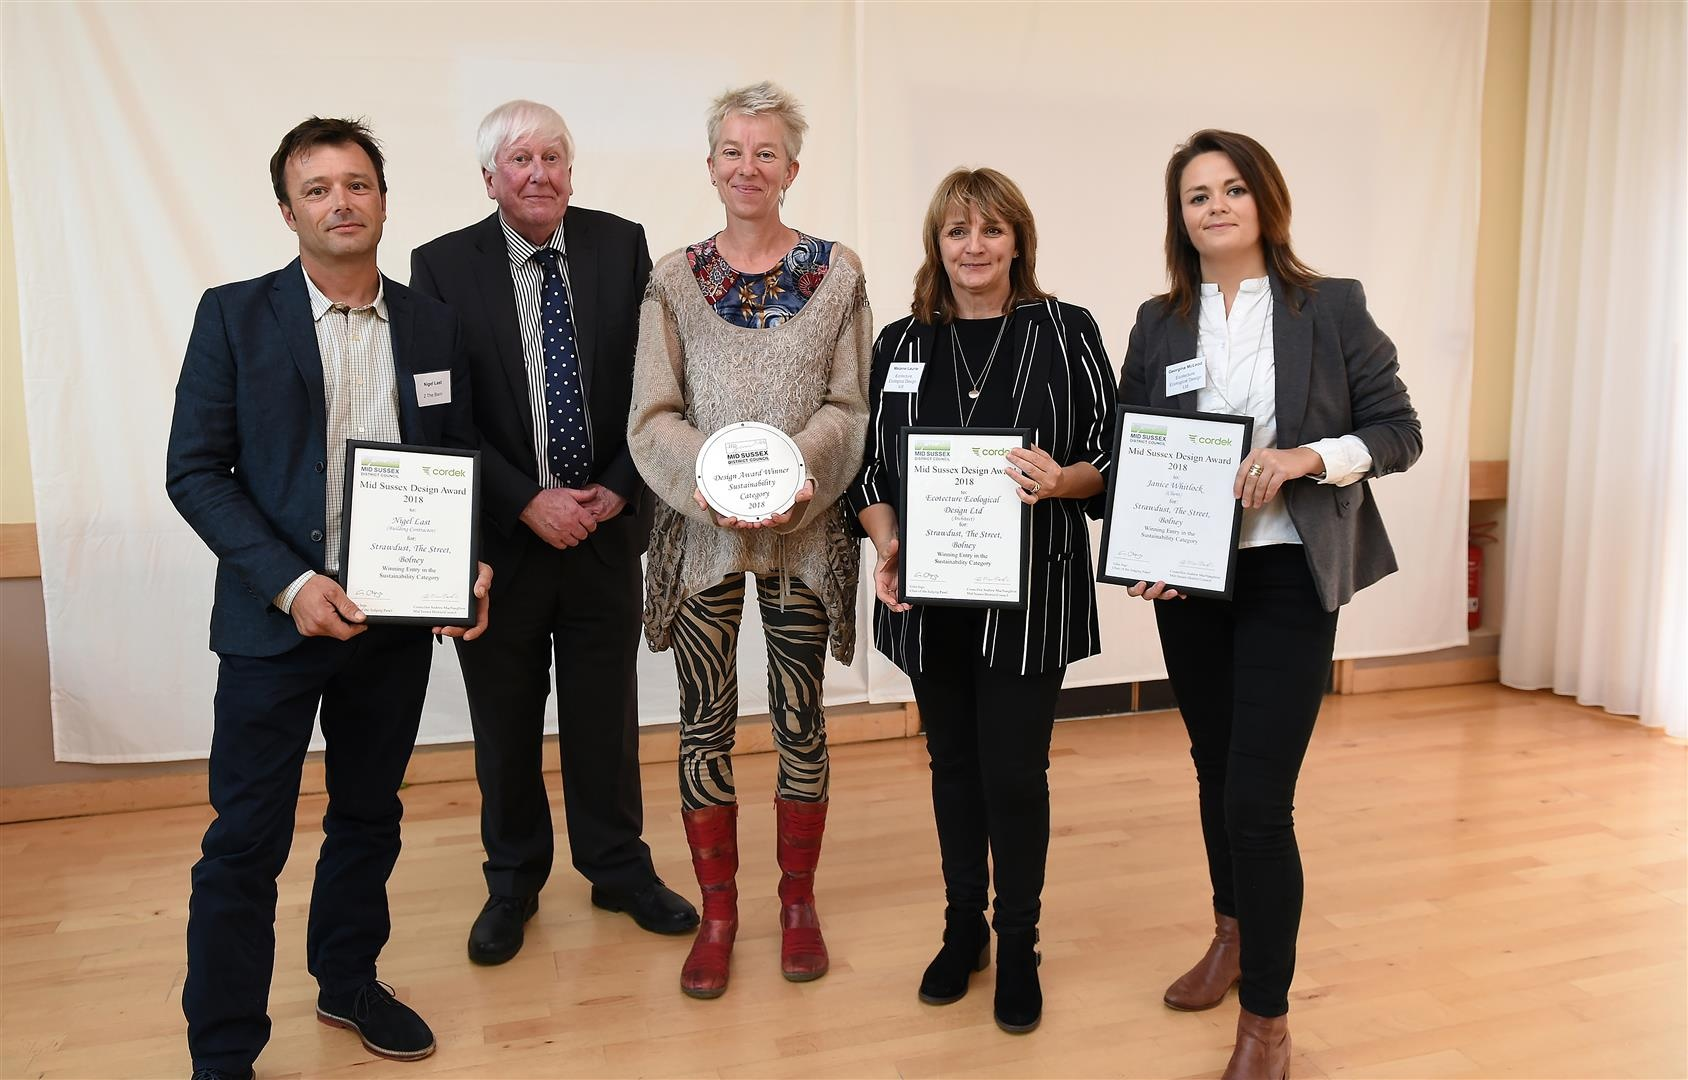 cllr_macnaughton_with_sustainability_award_winners_large_1688